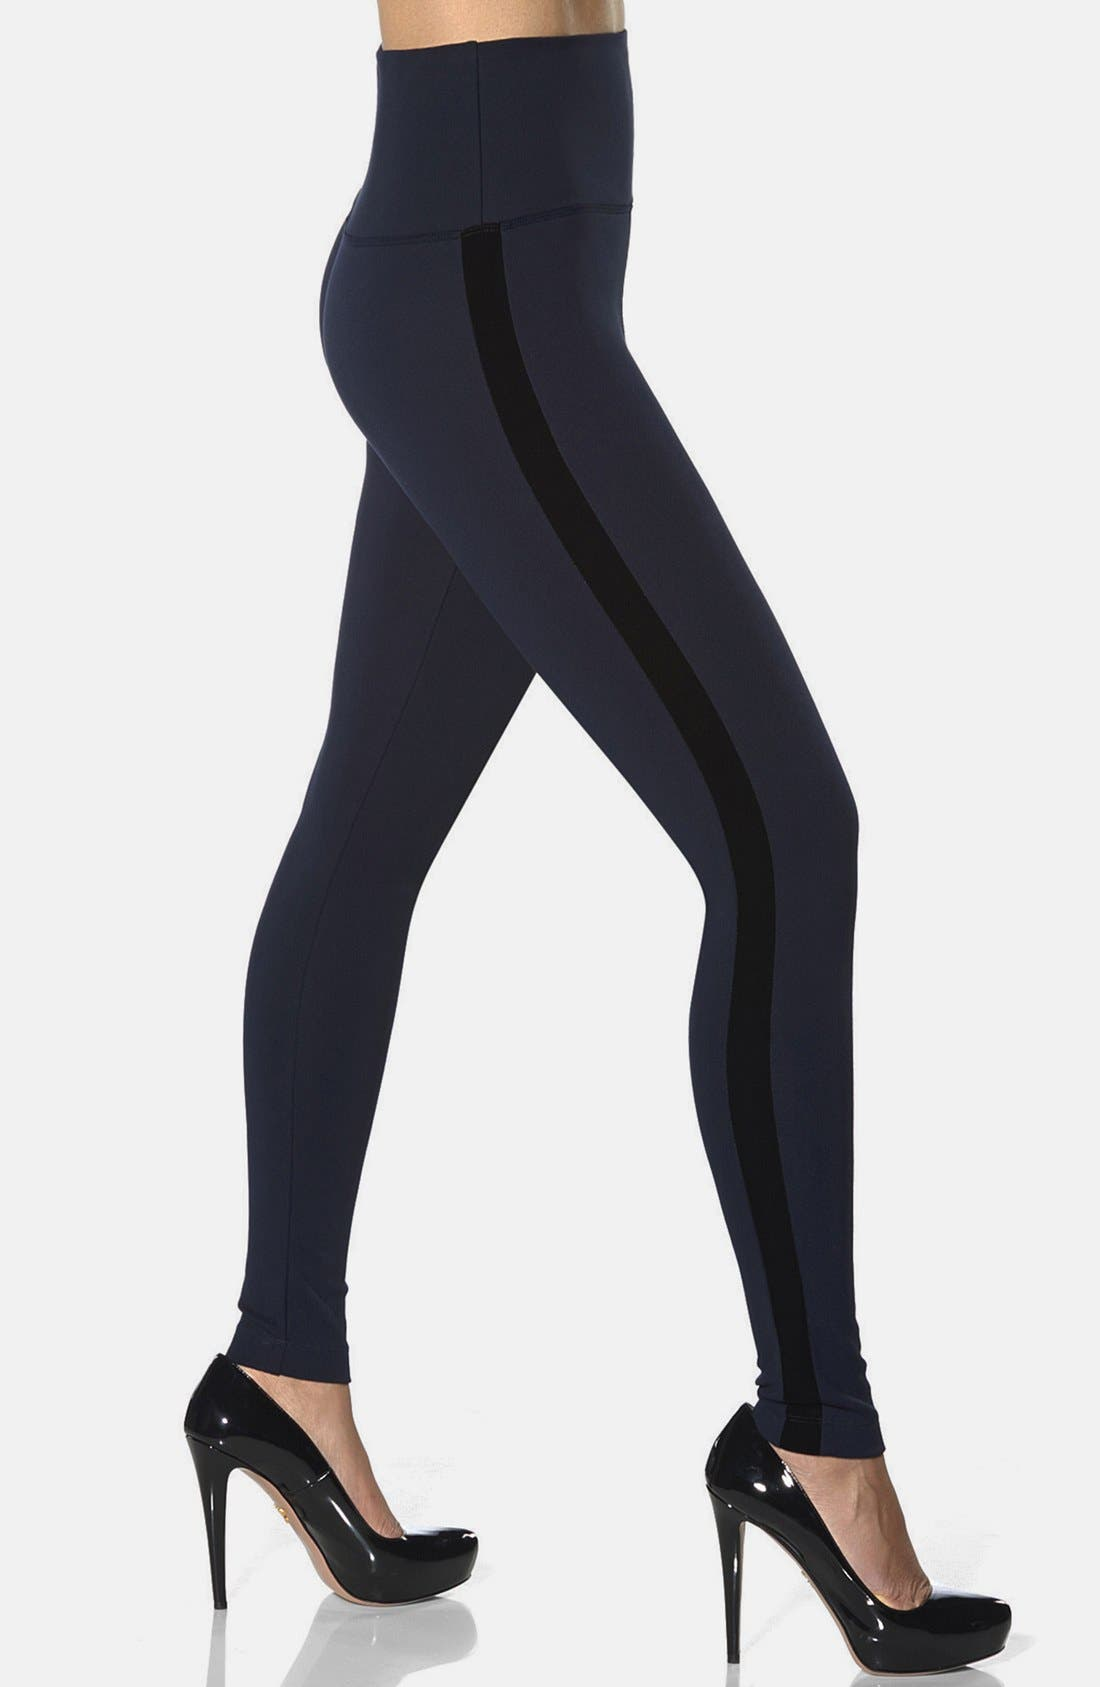 Main Image - Lyssé Velvet Trim Control Top Leggings